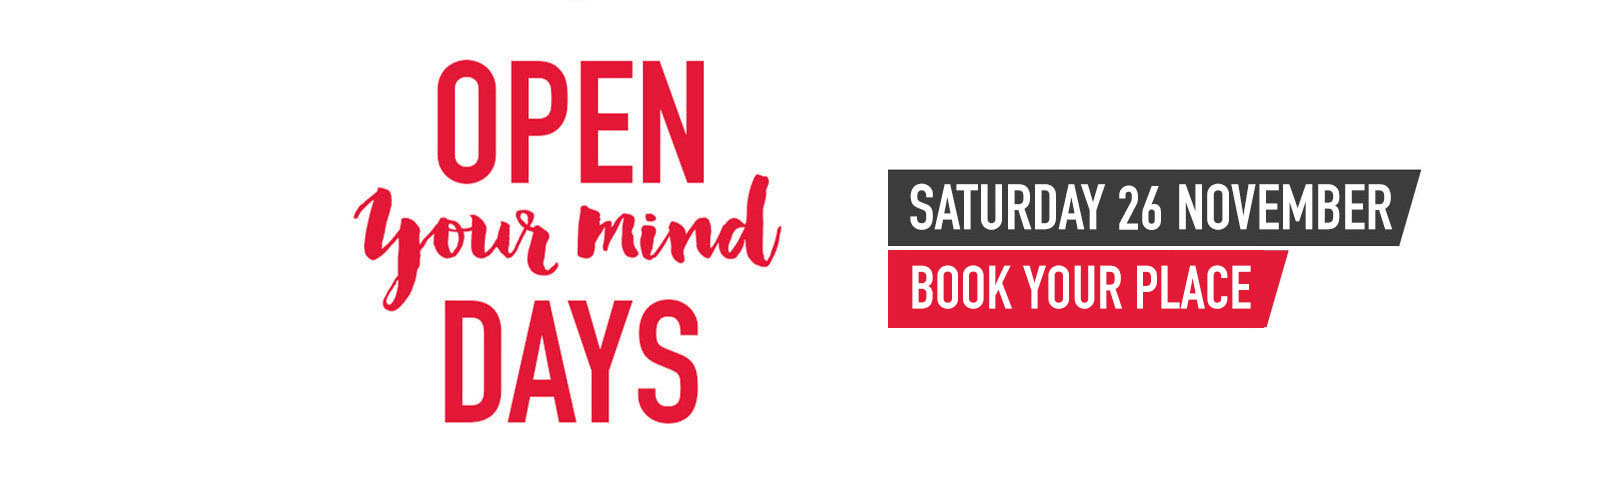 Open Your Mind Day: Saturday 26 November